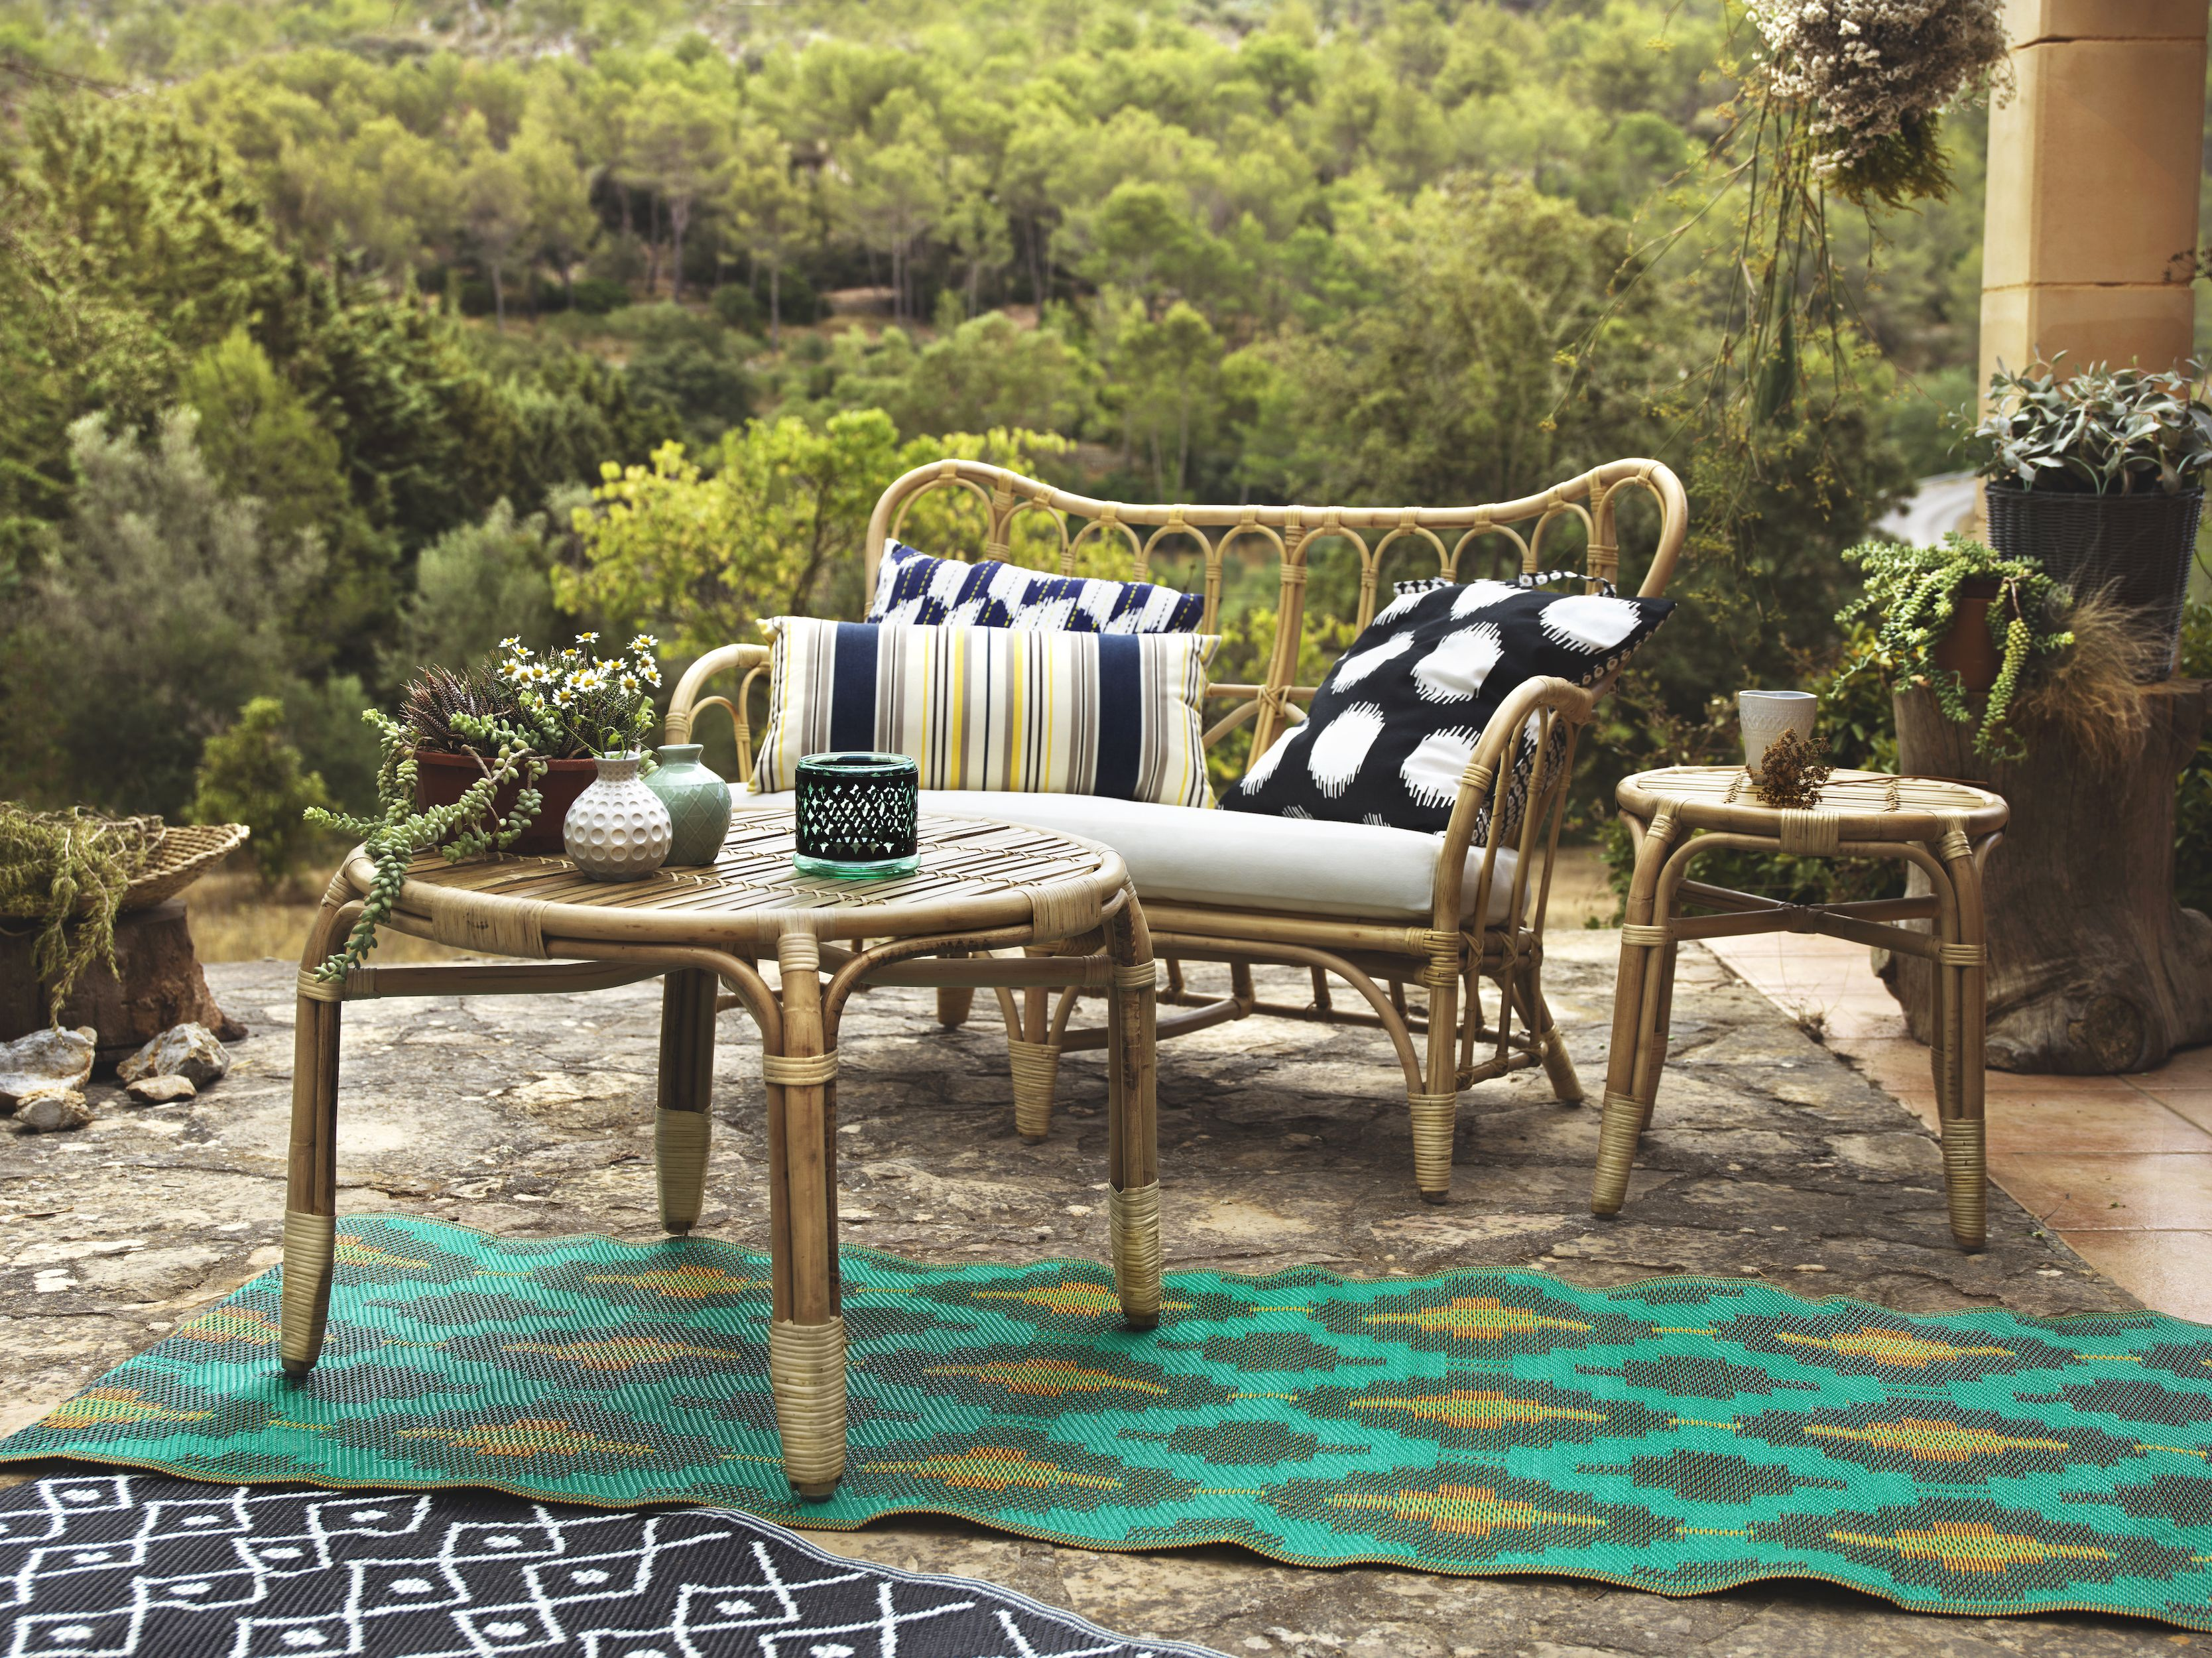 Rattan Furniture, Outdoor Rugs. Ikea Sommar 2017 Collection